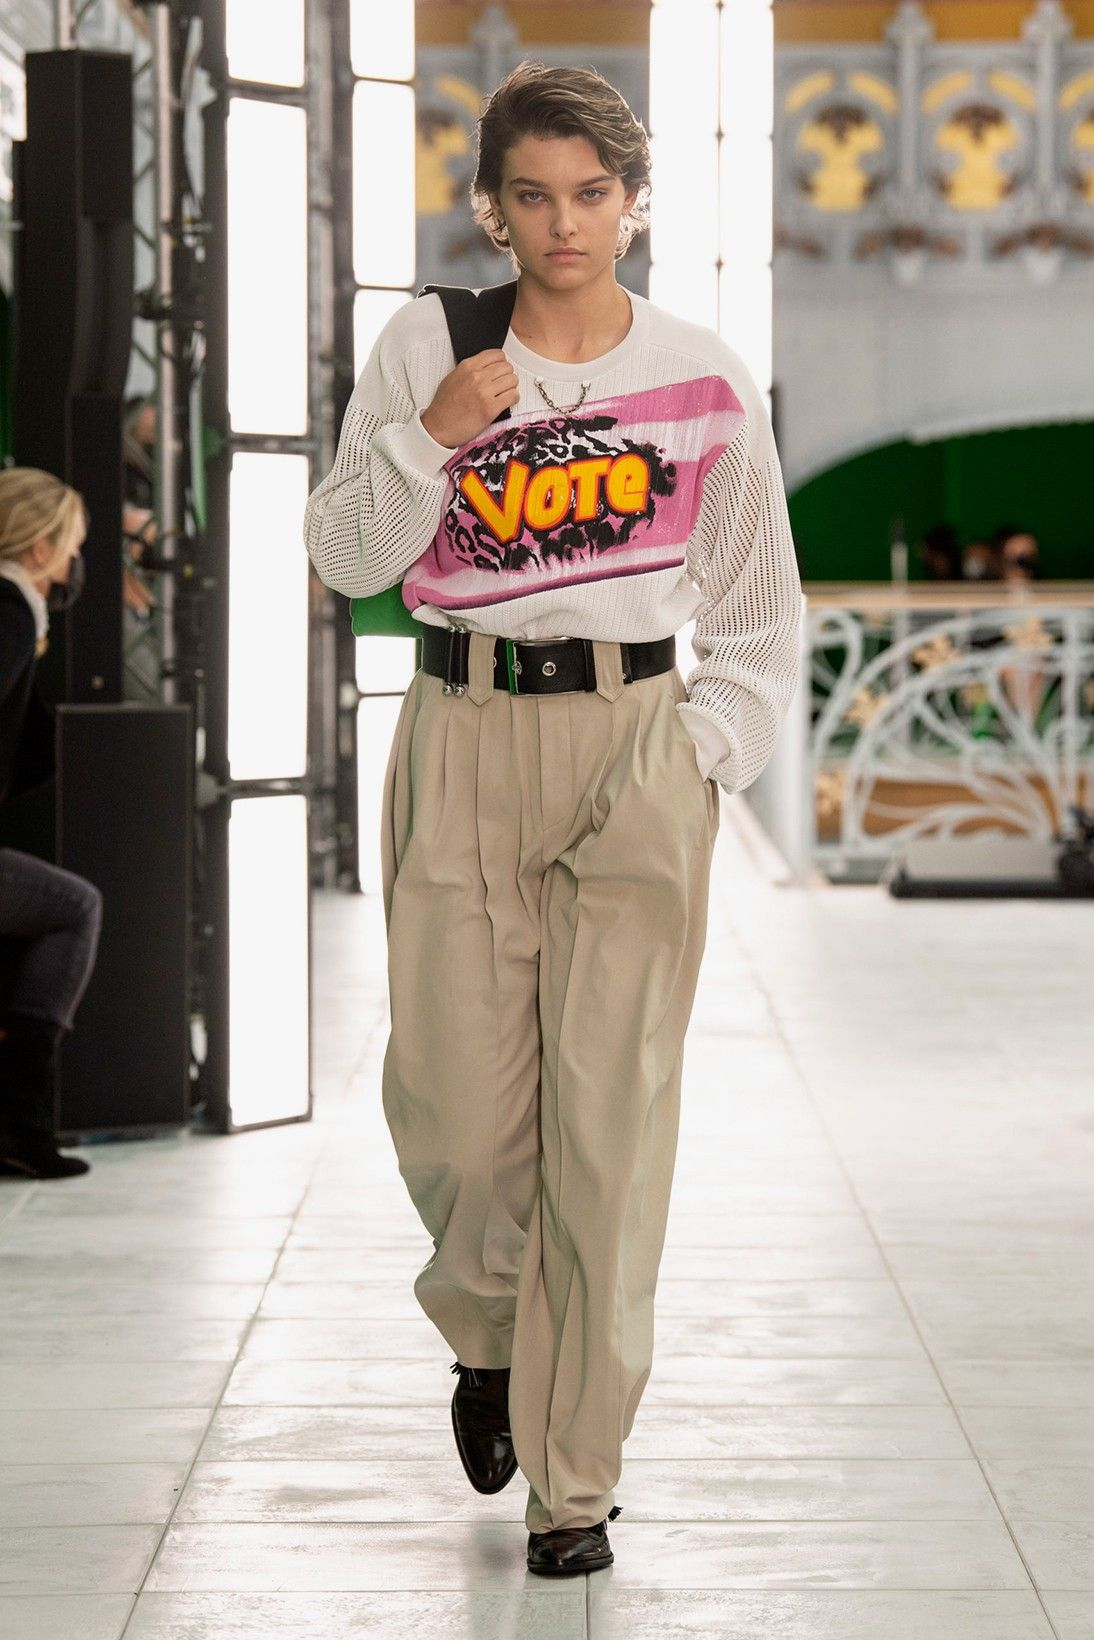 Louis Vuitton SS 21